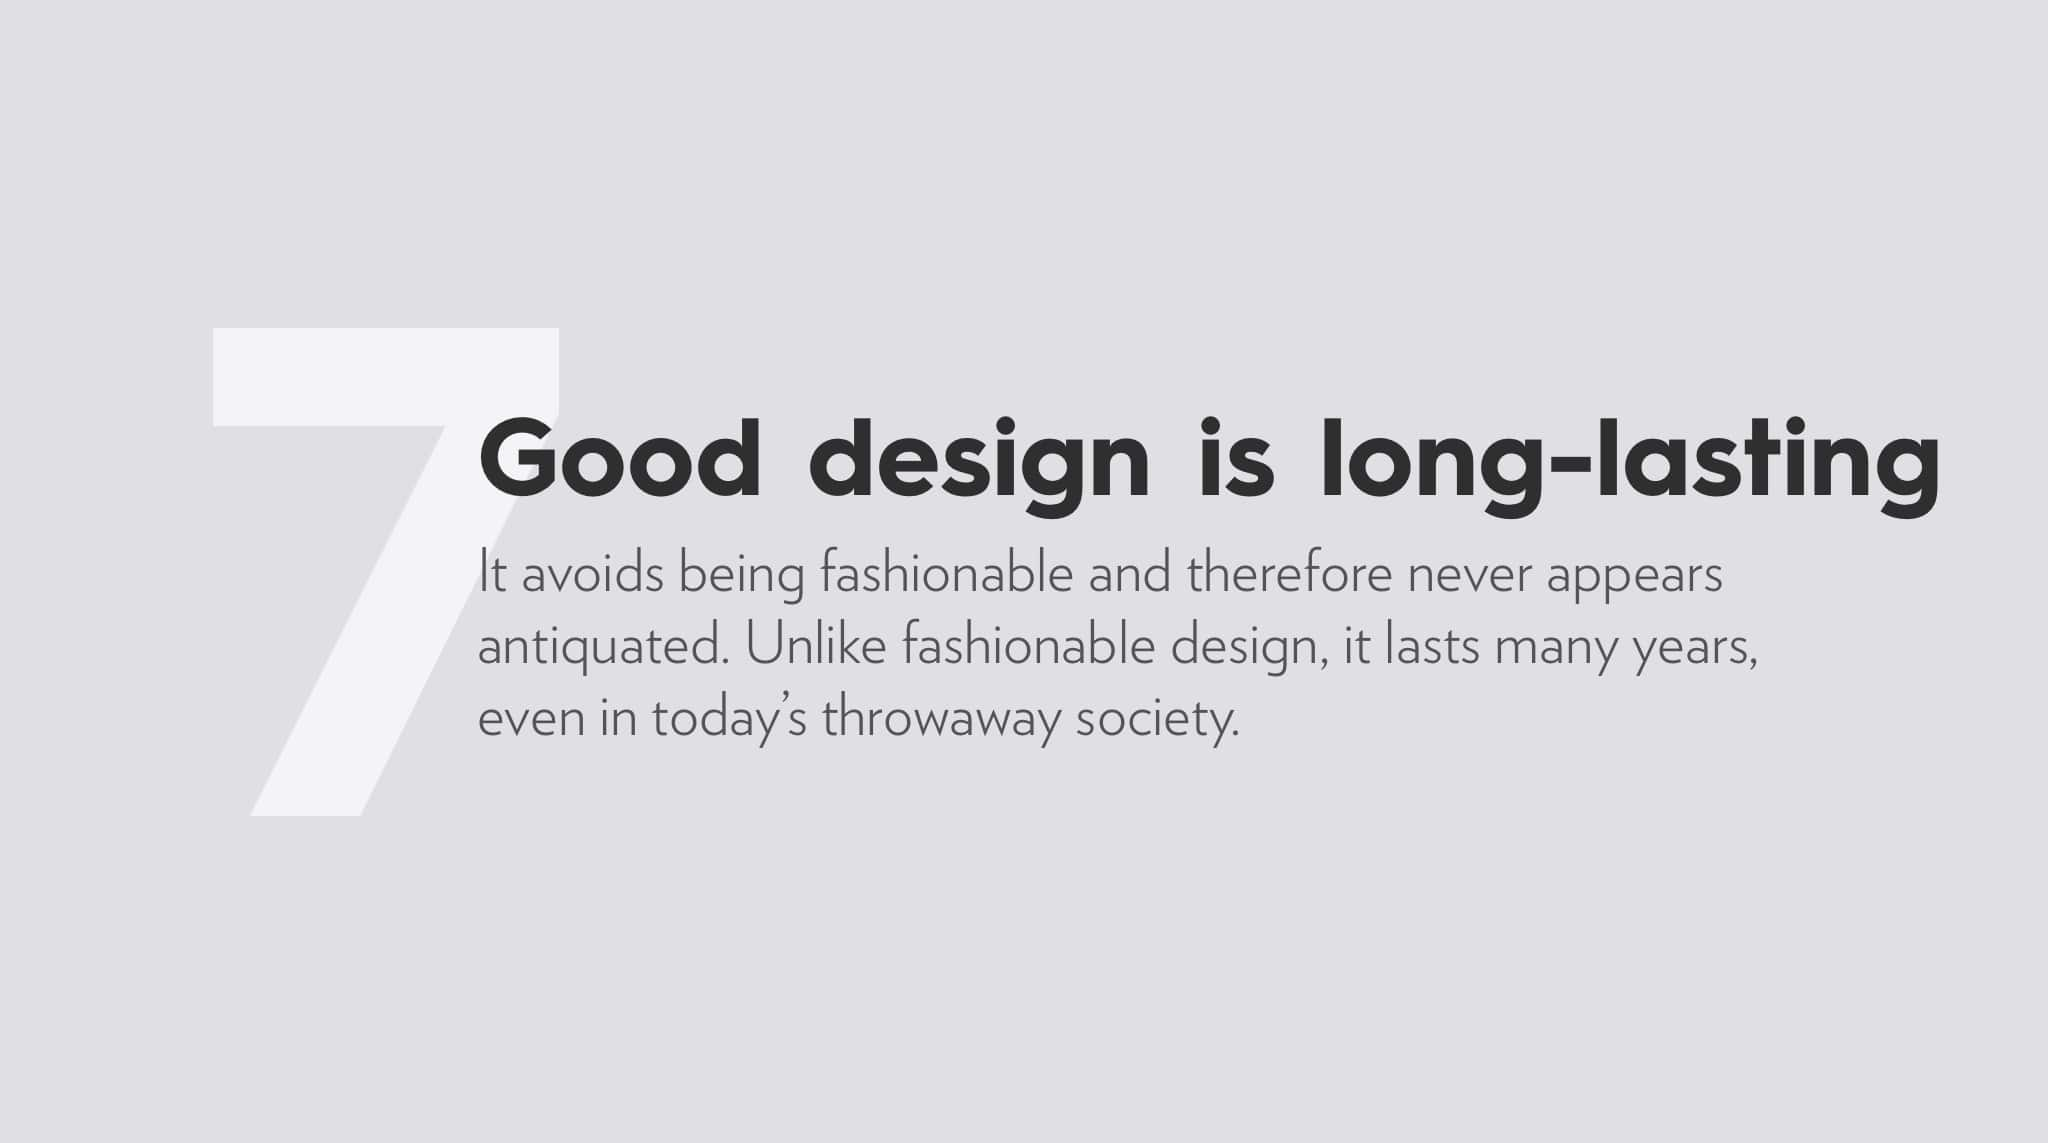 Ten Principles For Good Design by Dieter Rams, good design is long-lasting.